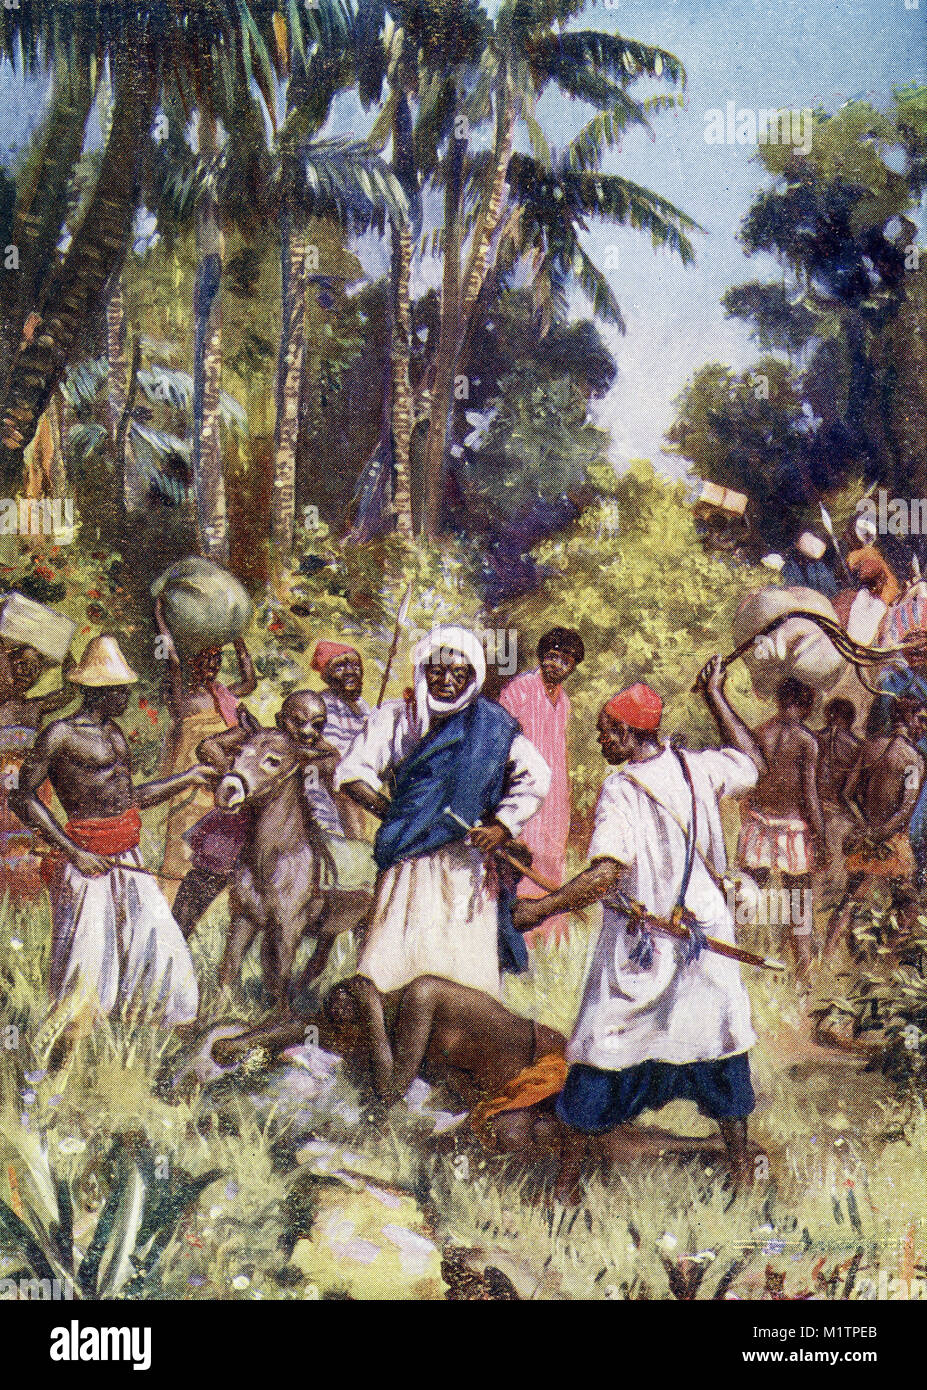 Halftone illustration of Arab slave traders at work in Africa, circa 1700s. From an original image in How Other - Stock Image